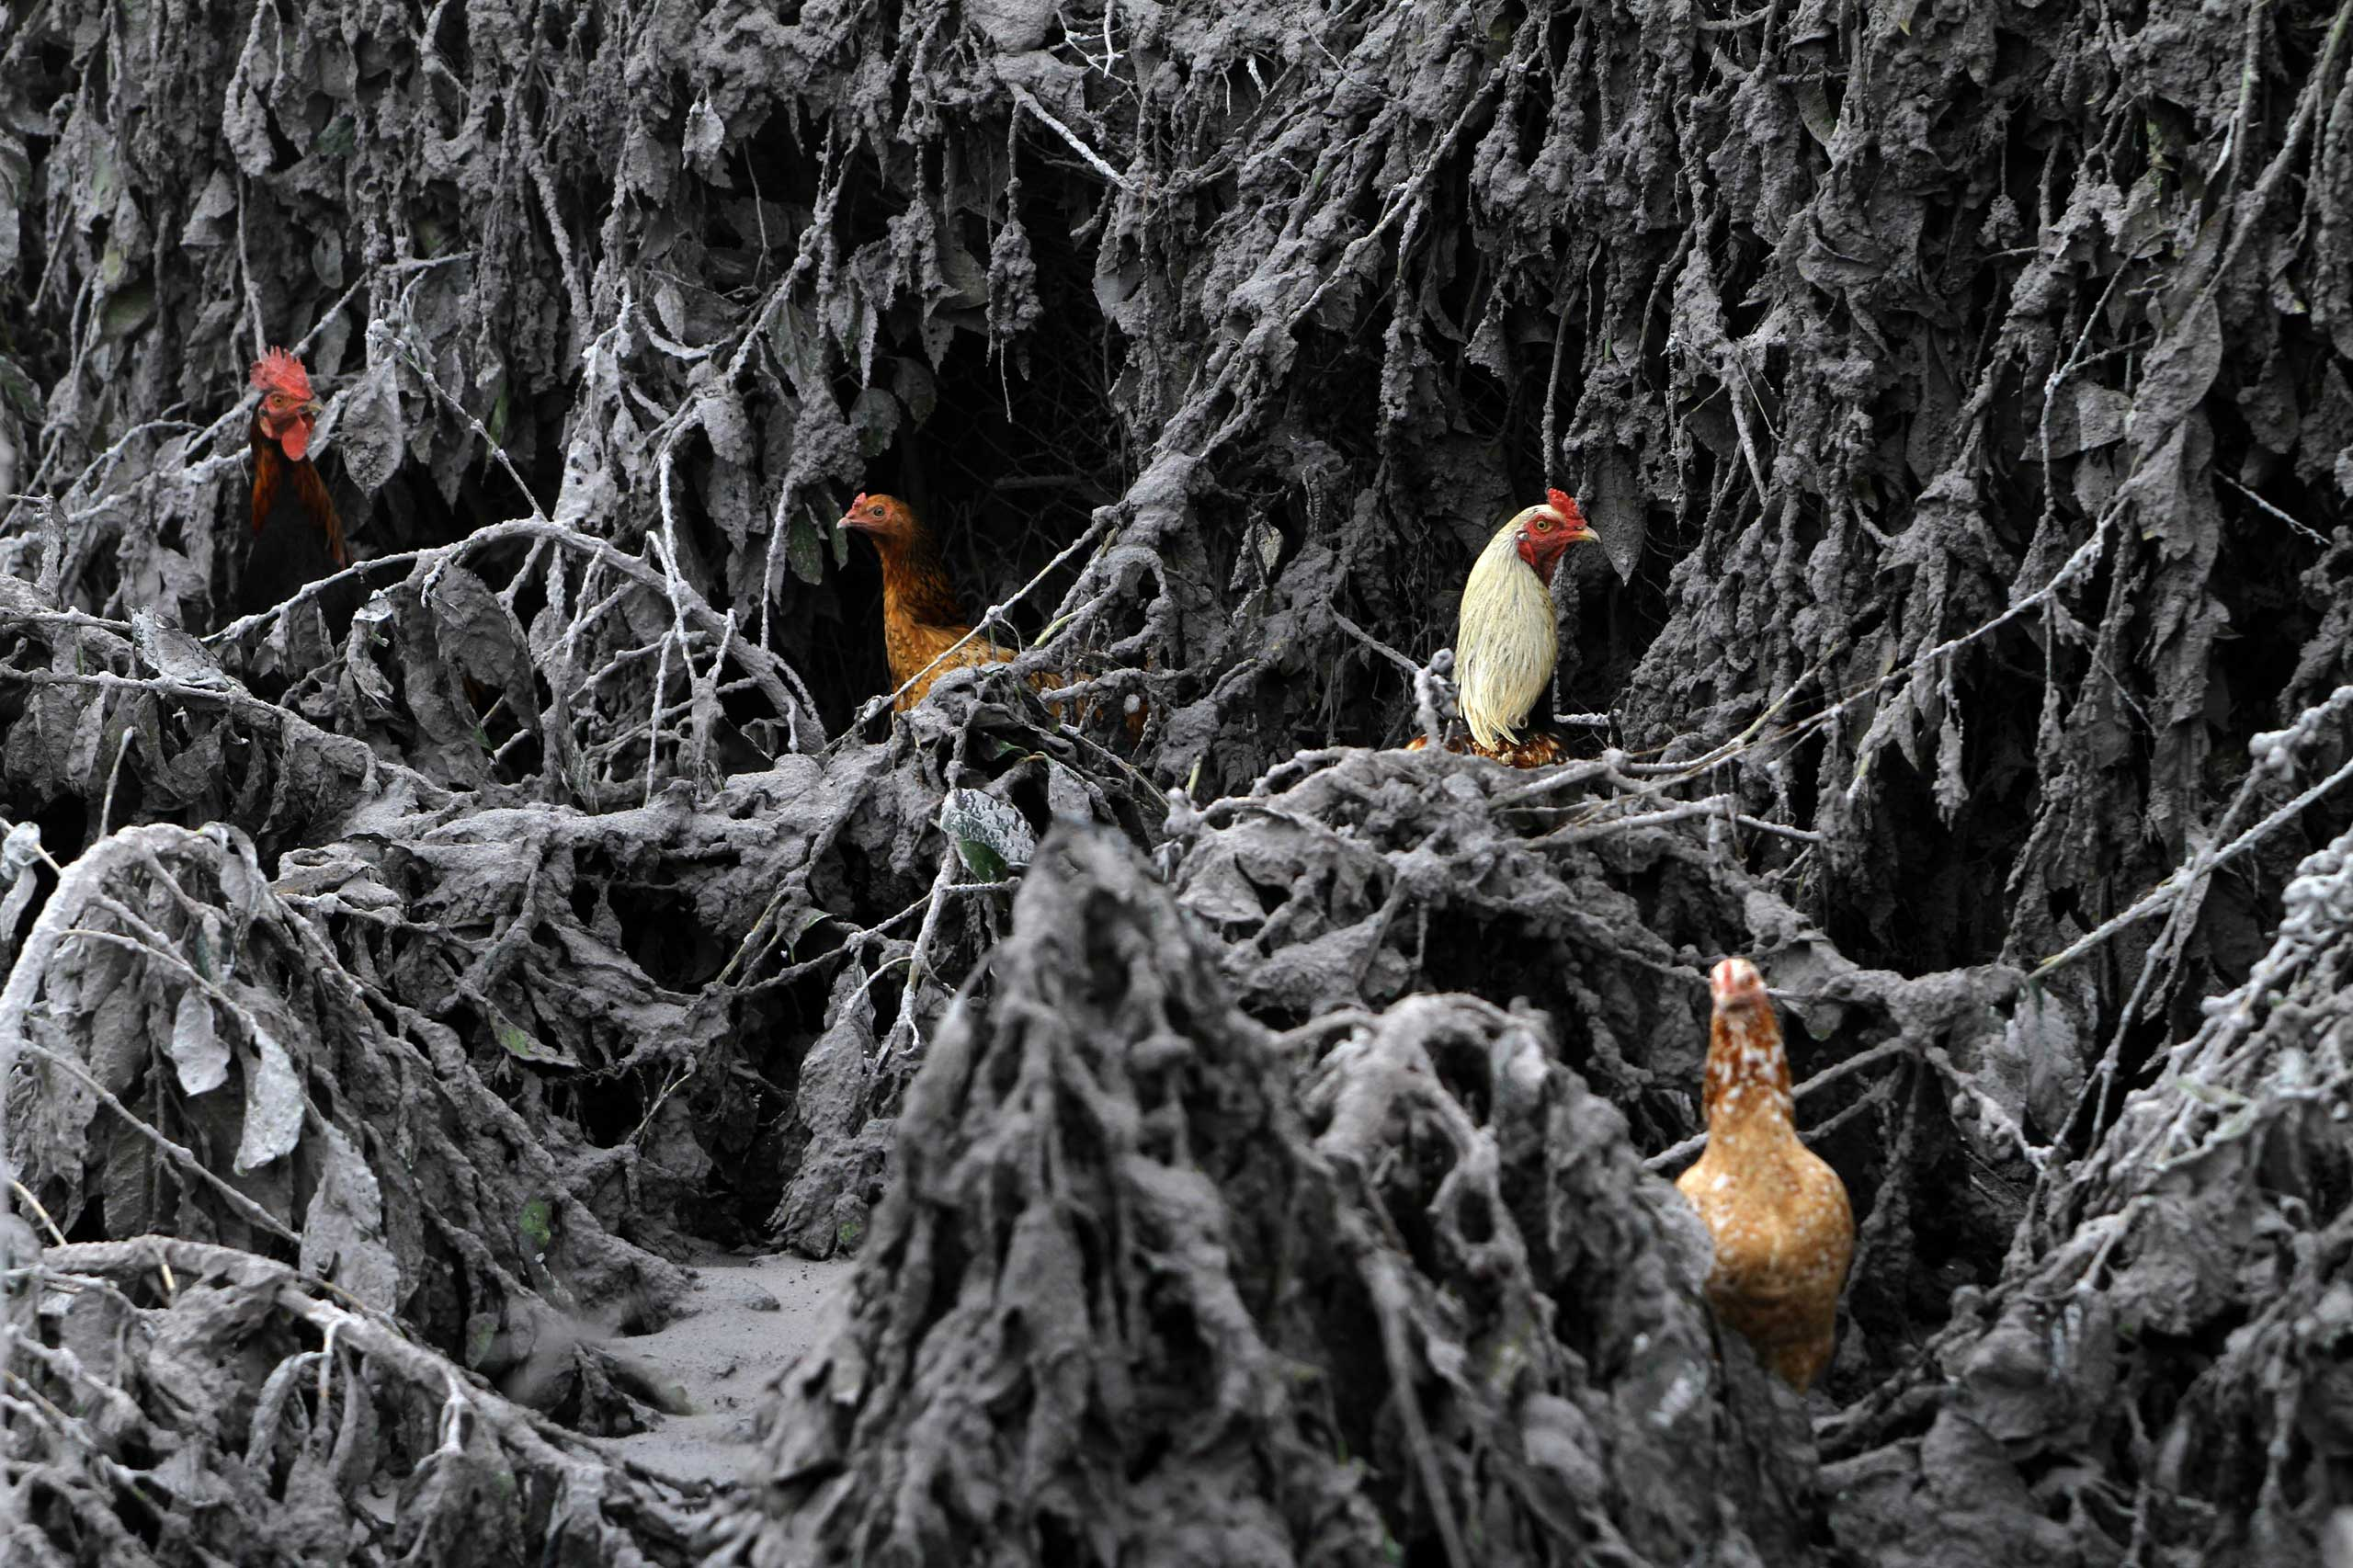 Chickens are seen in the midst of plants covered by ash from Mount Sinabung near Sigarang-Garang in Indonesia's North Sumatra province, Jan. 12, 2014.